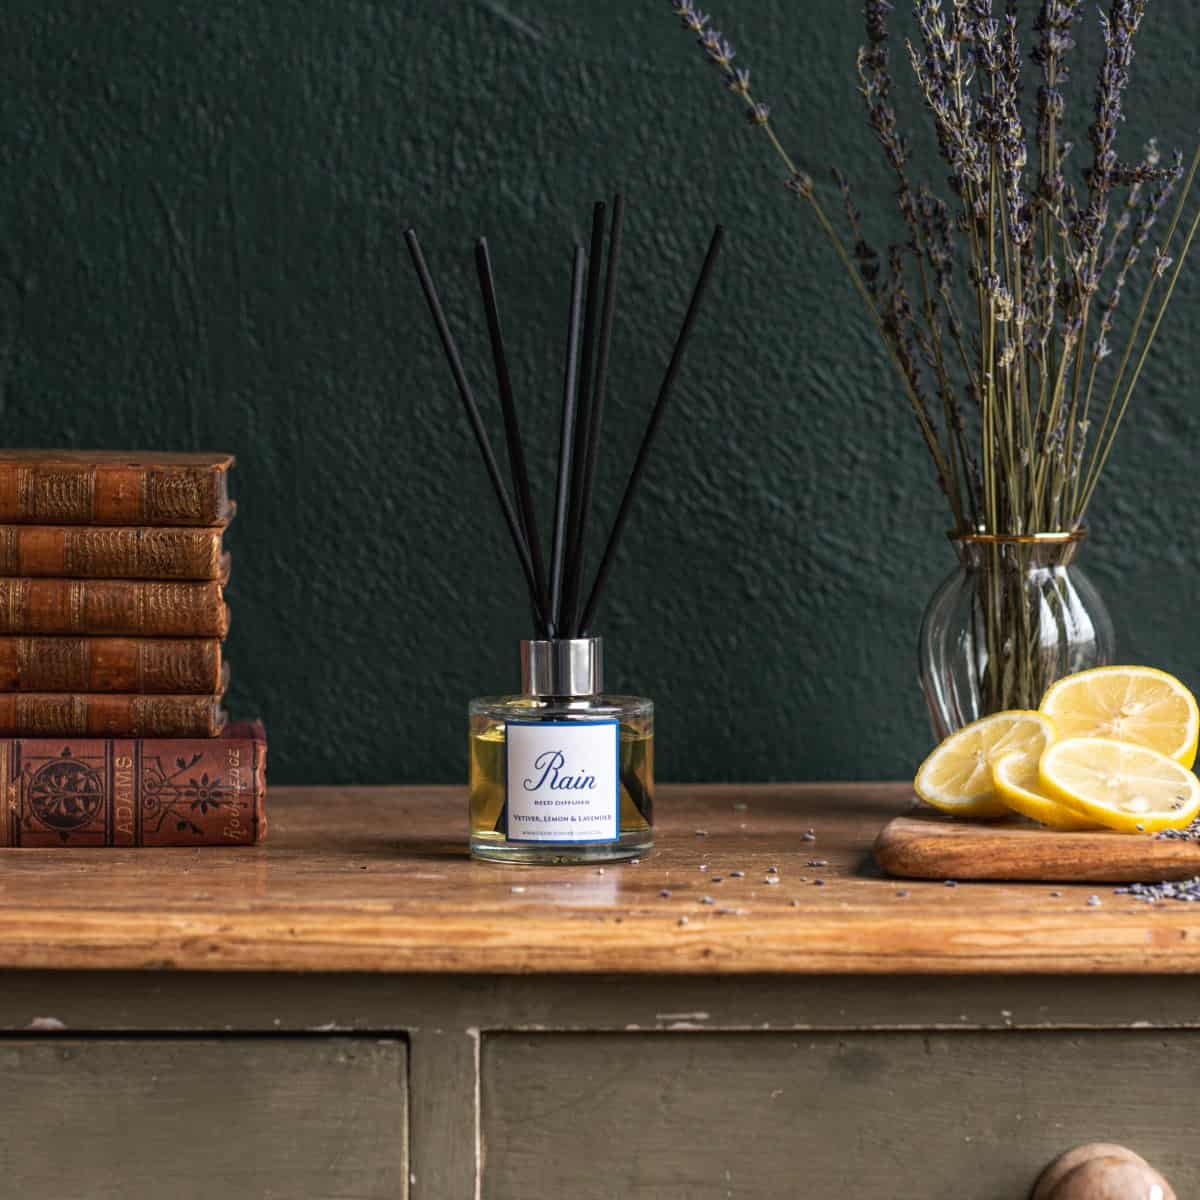 Rain diffuser bottle with black fibre reeds sat on top of a wooden rustic chest with antique books on the left hand side and glass vase of lavender on the right hand side. Sliced lemons in front of the vase.